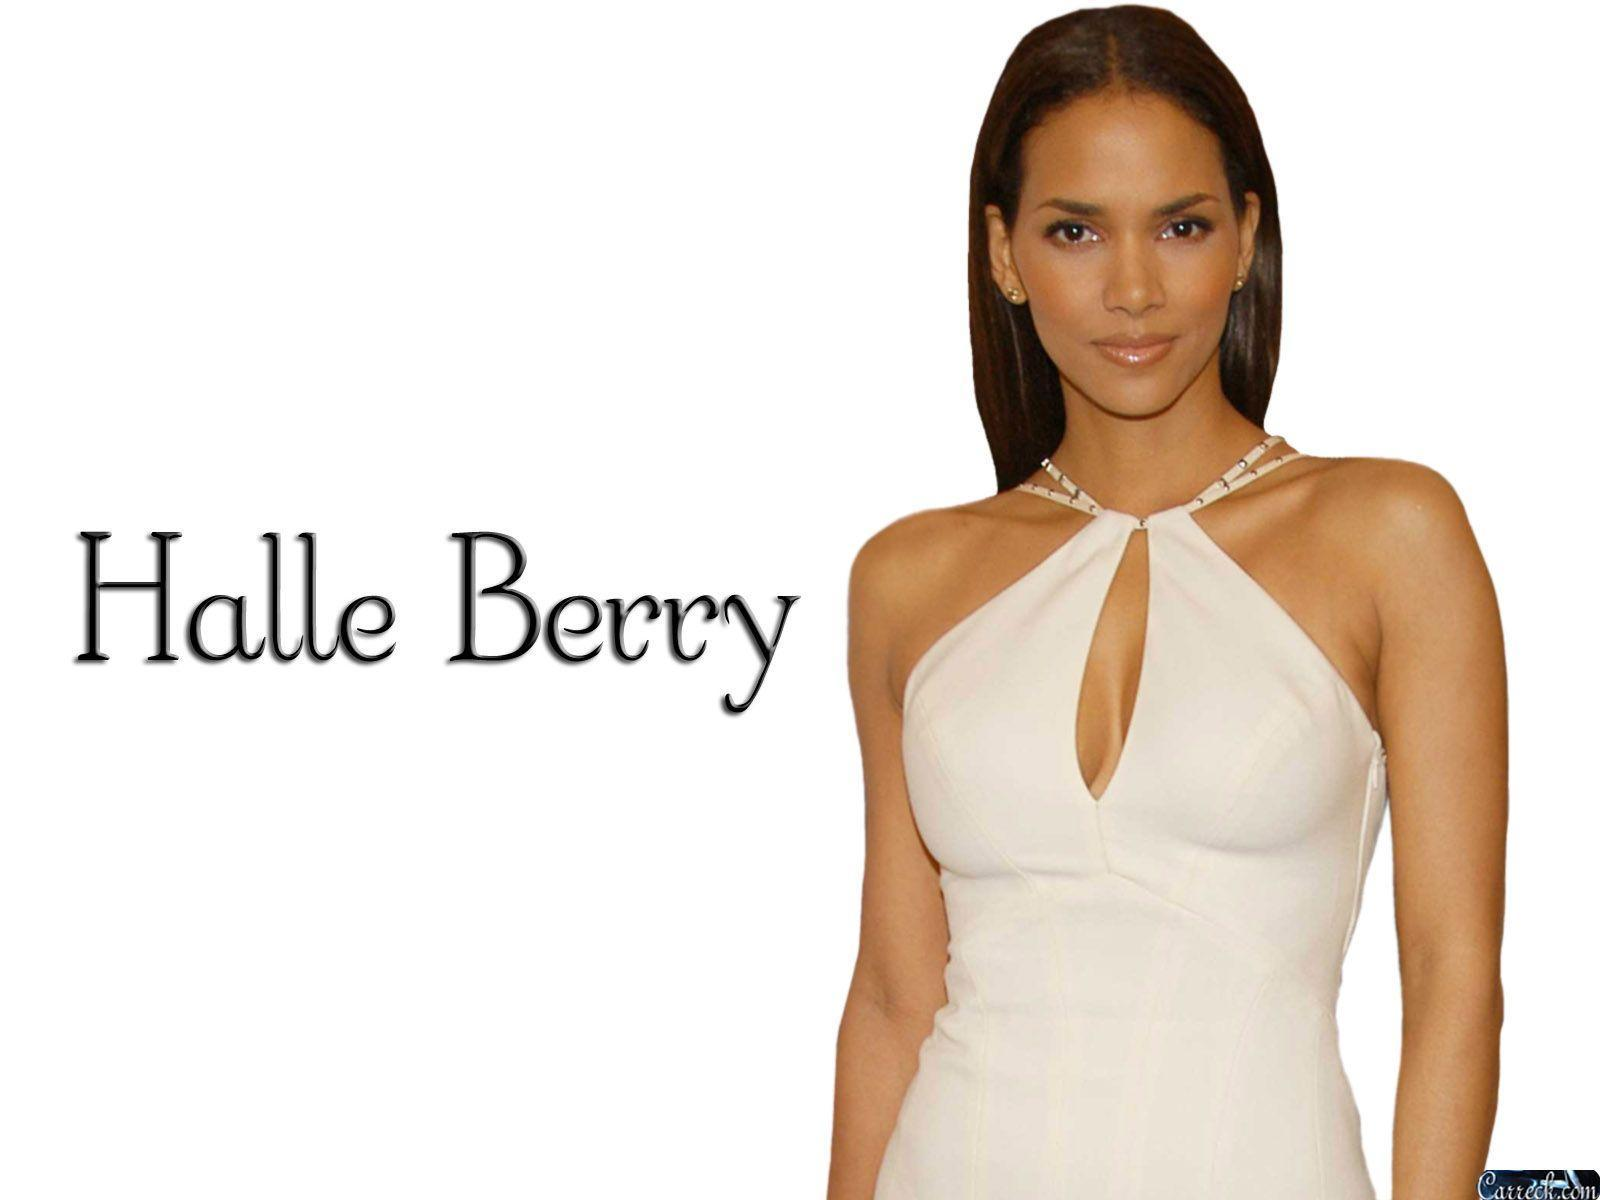 halle berry wallpapers 1920 - photo #37